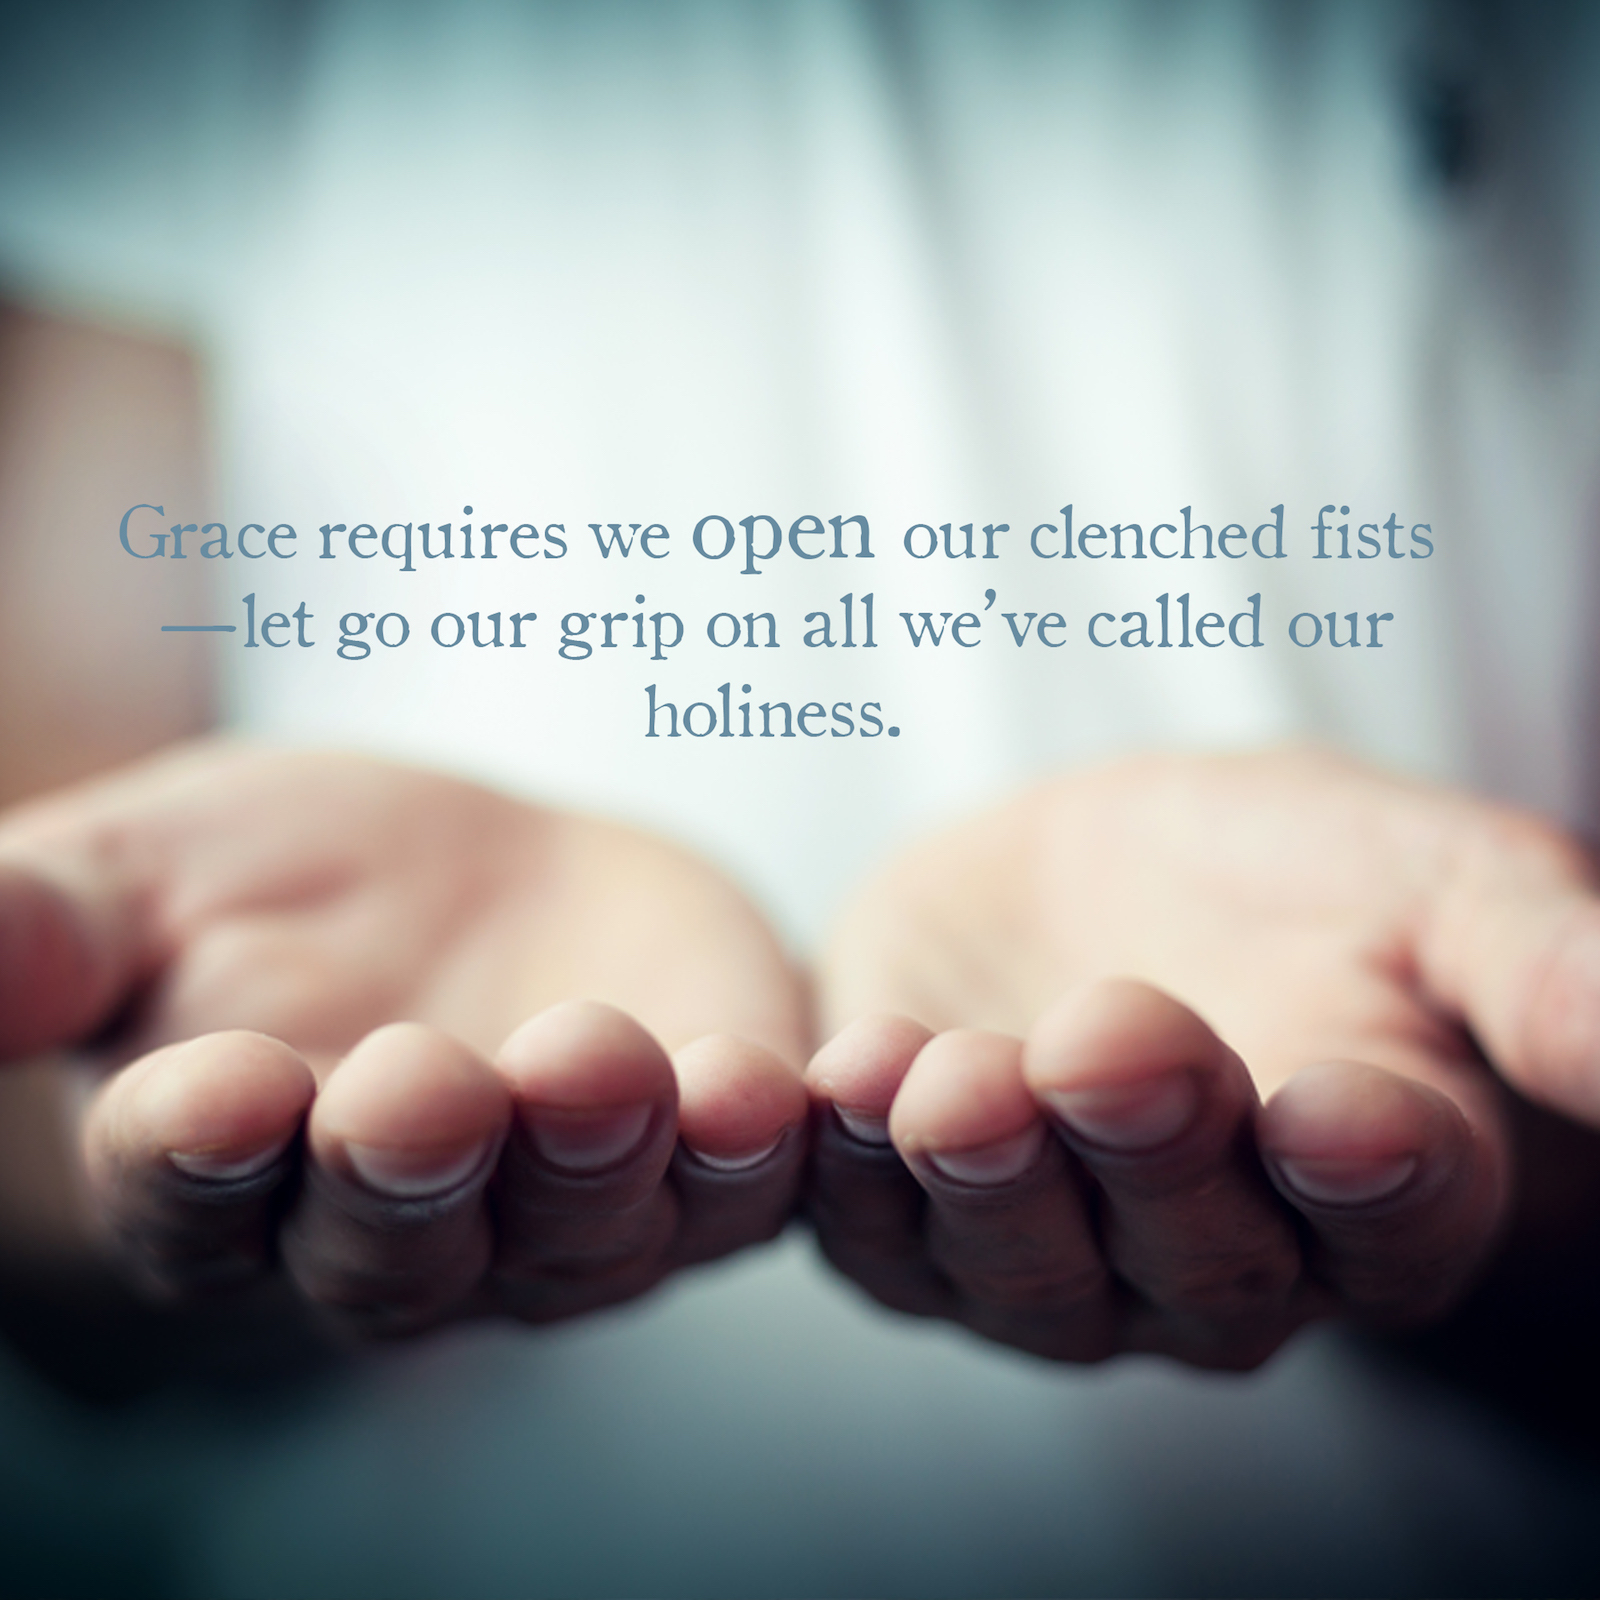 WHAT GRACE REQUIRES (May 19, 2018)